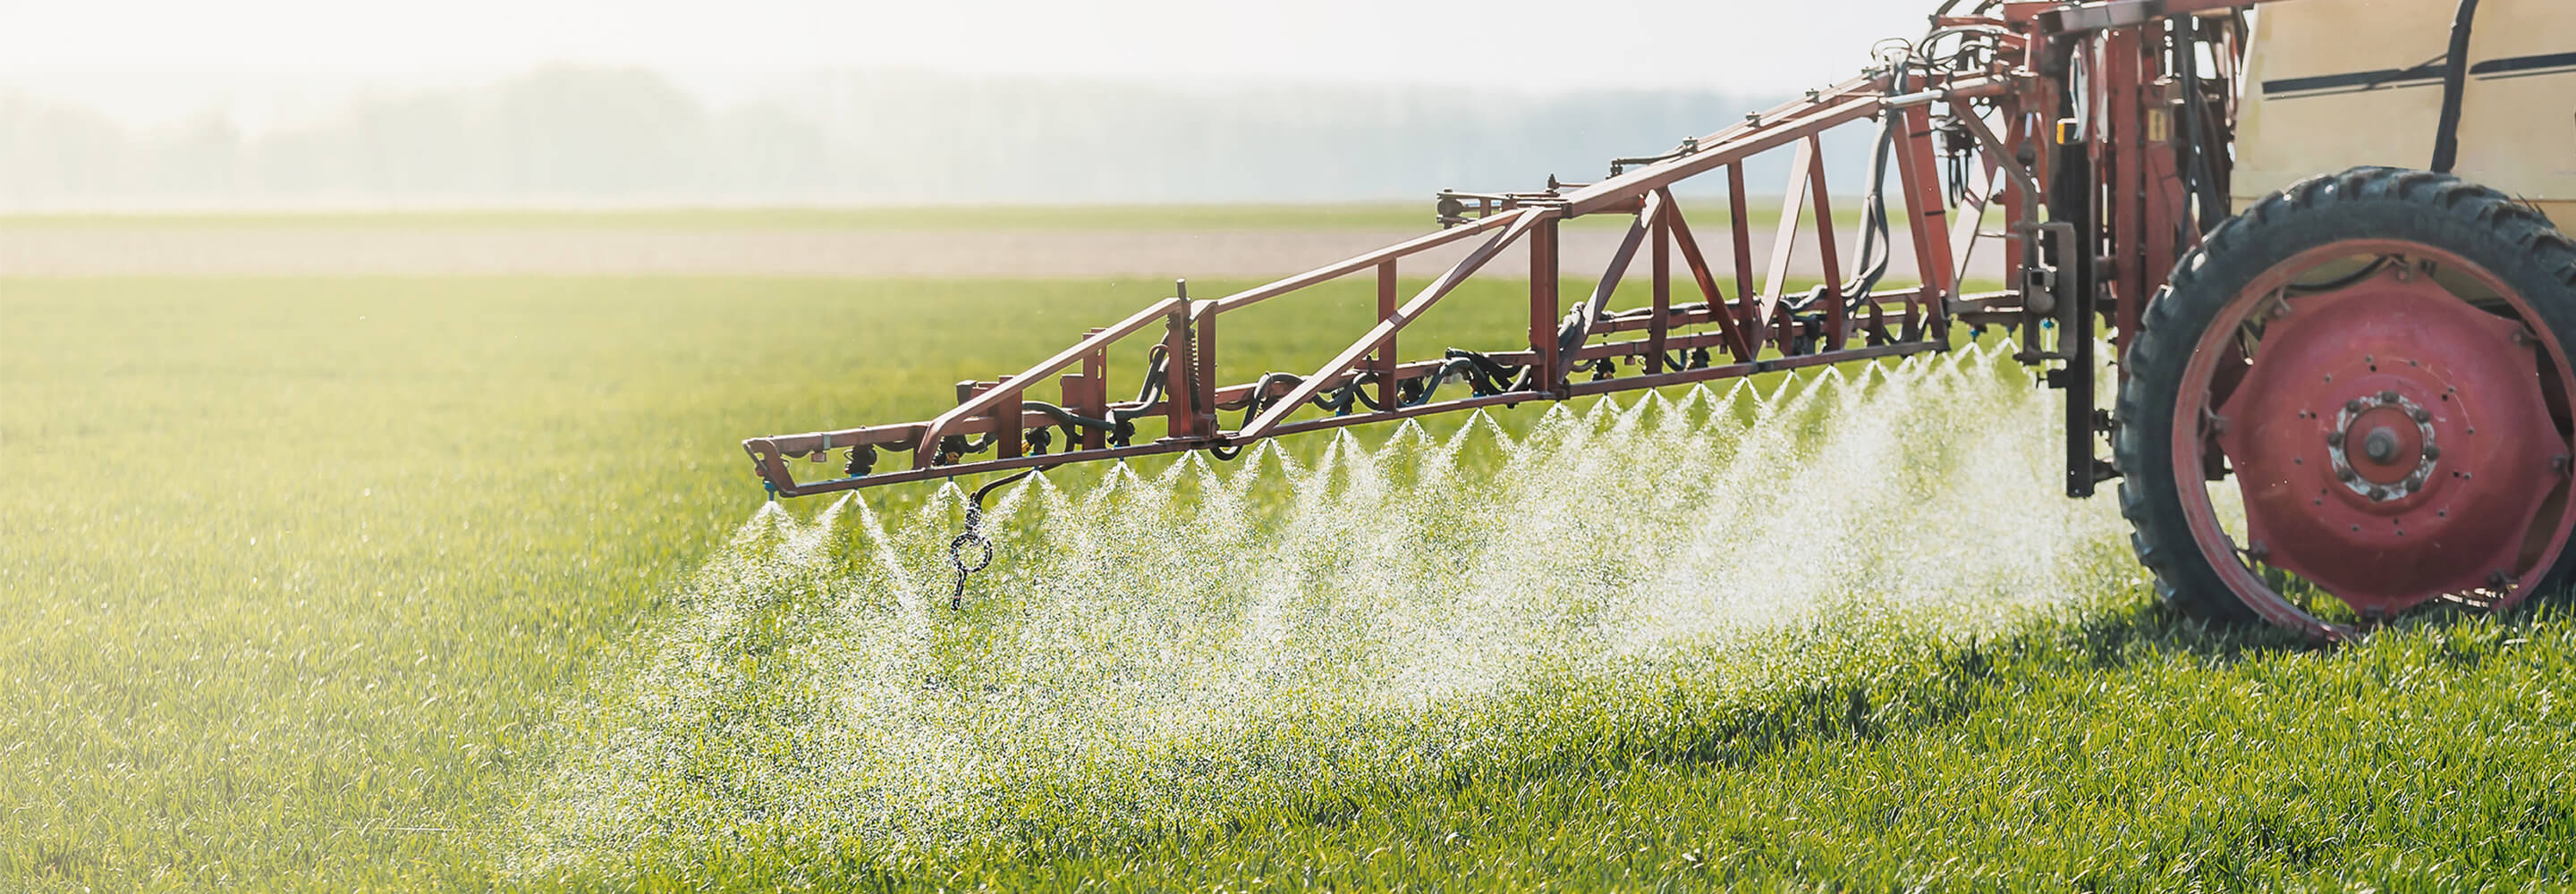 Green pasture being sprayed with chemicals